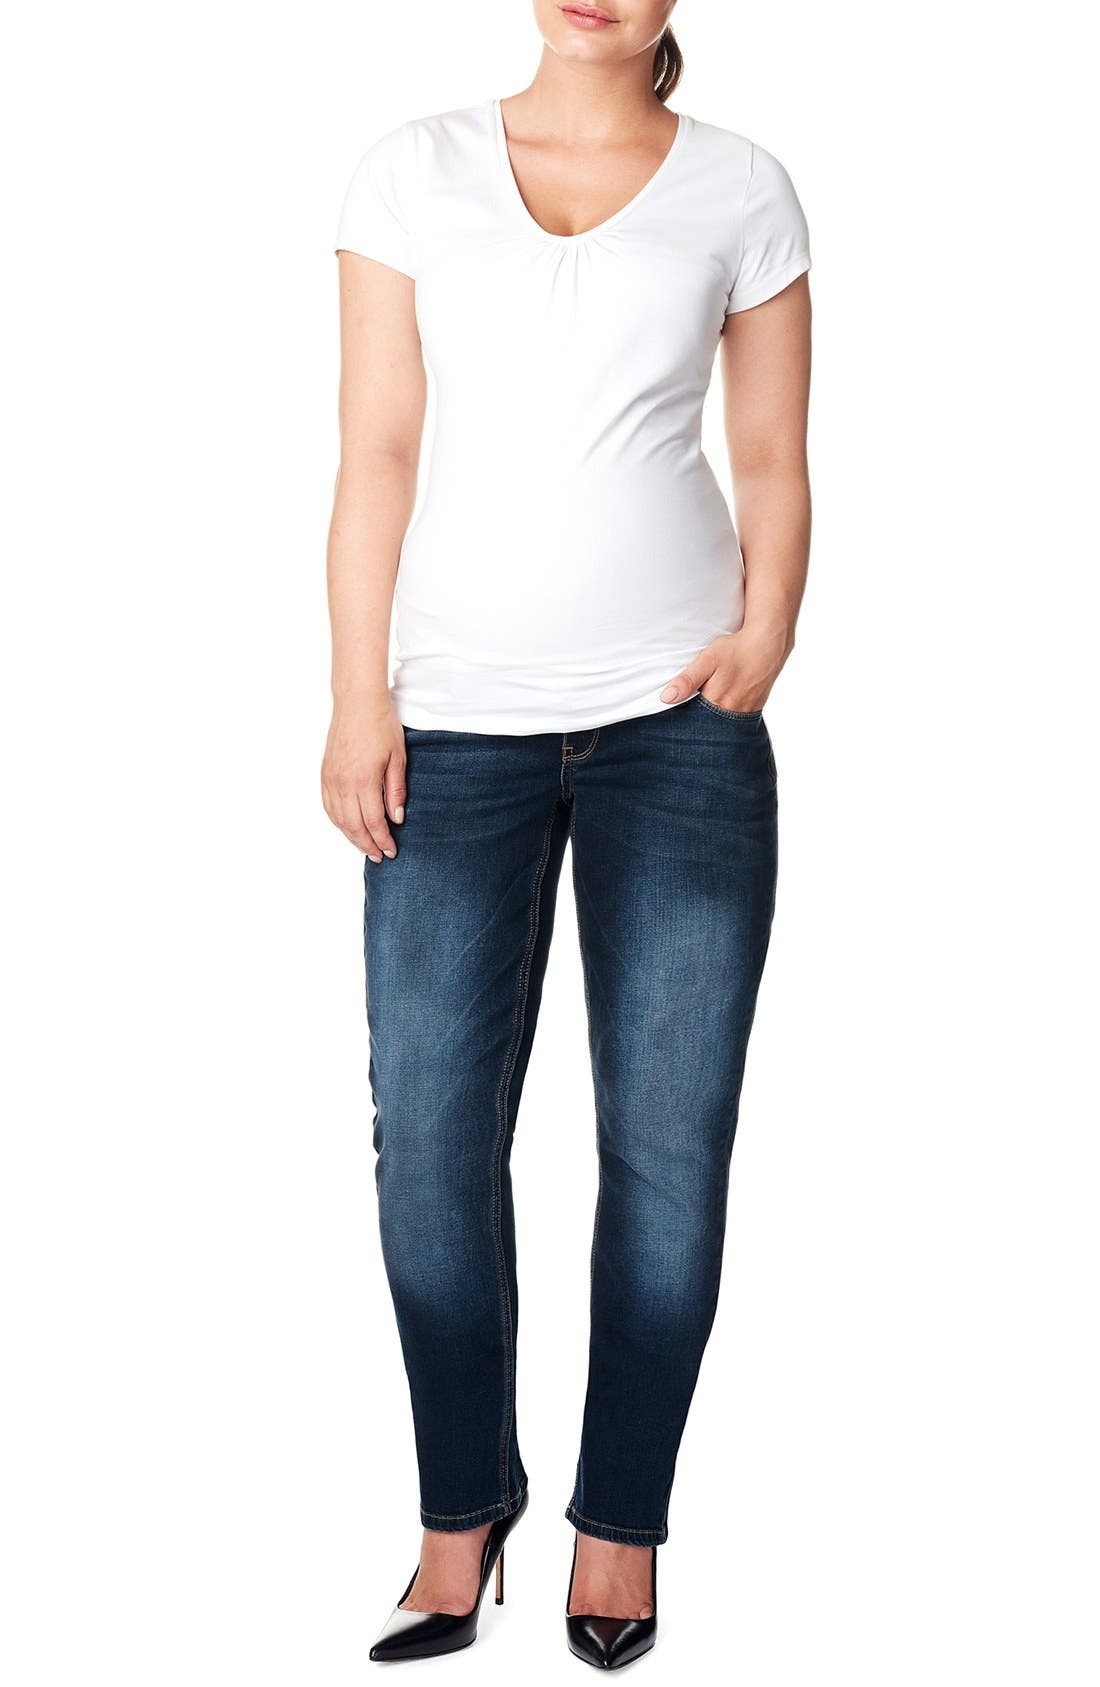 'Mena Comfort' Over the Belly Straight Leg Maternity Jeans,                             Main thumbnail 1, color,                             DARK STONE WASH